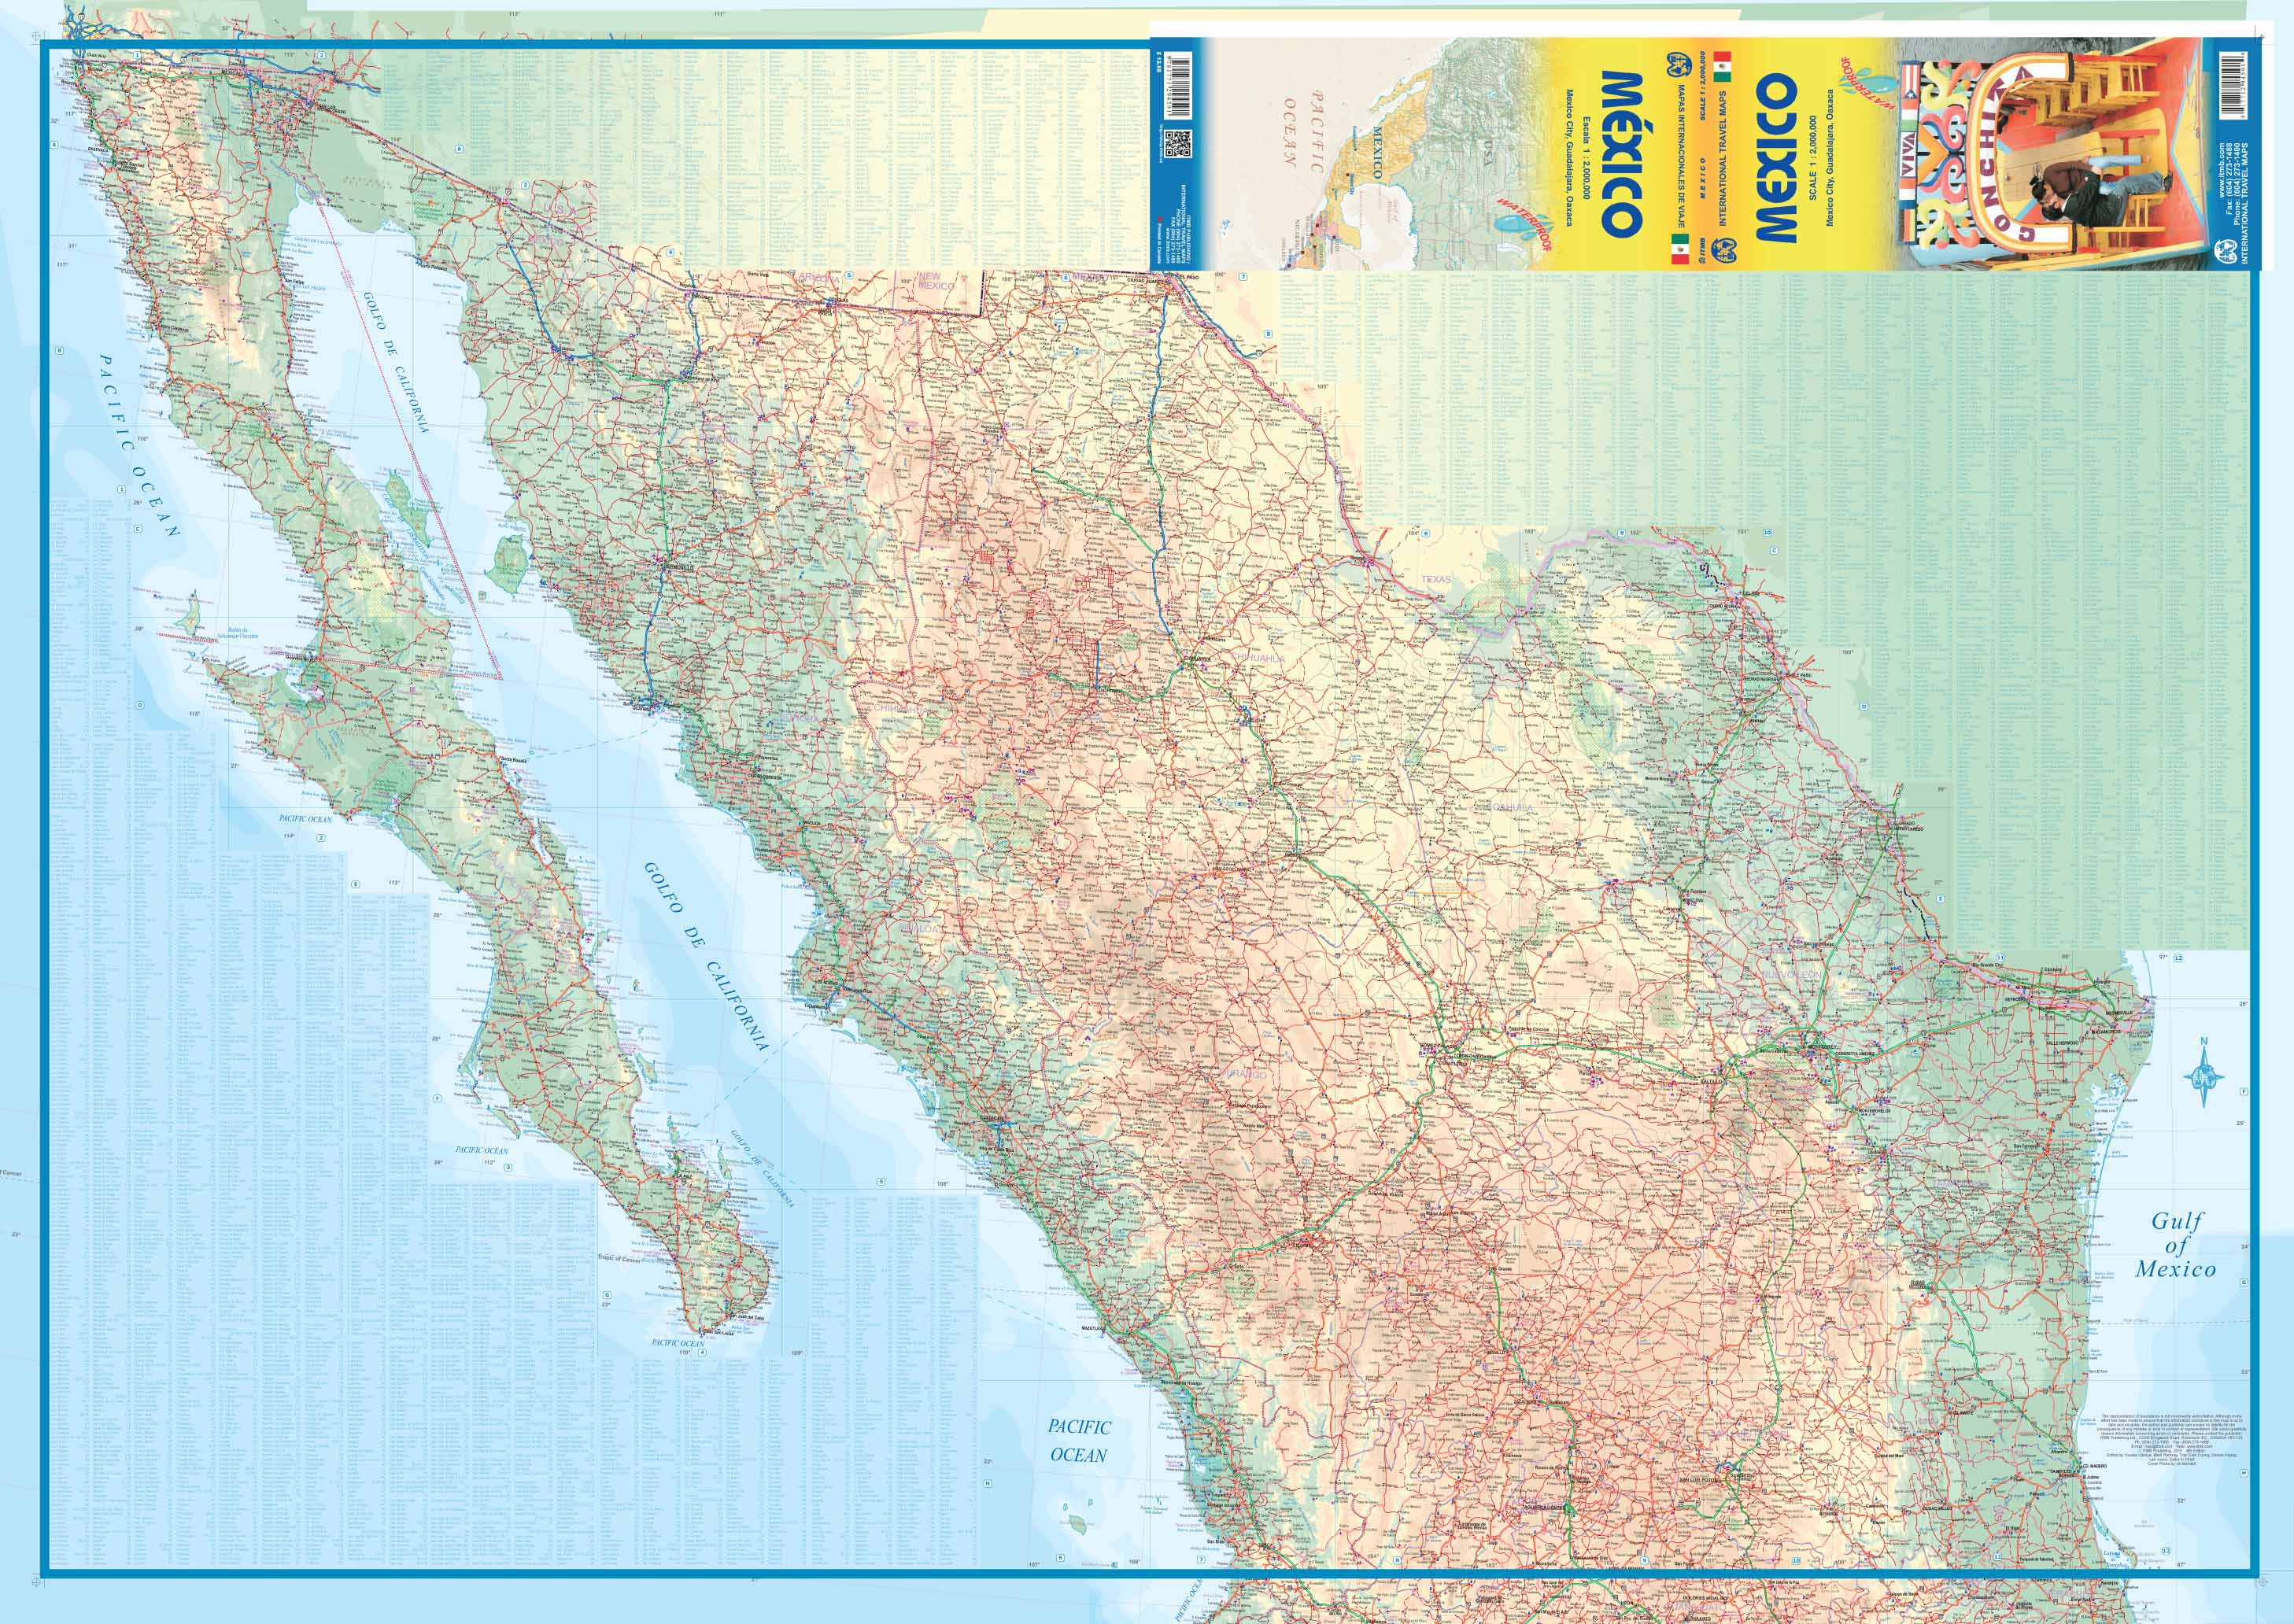 Maps For Travel City Maps Road Maps Guides Globes Topographic - Mexico road map